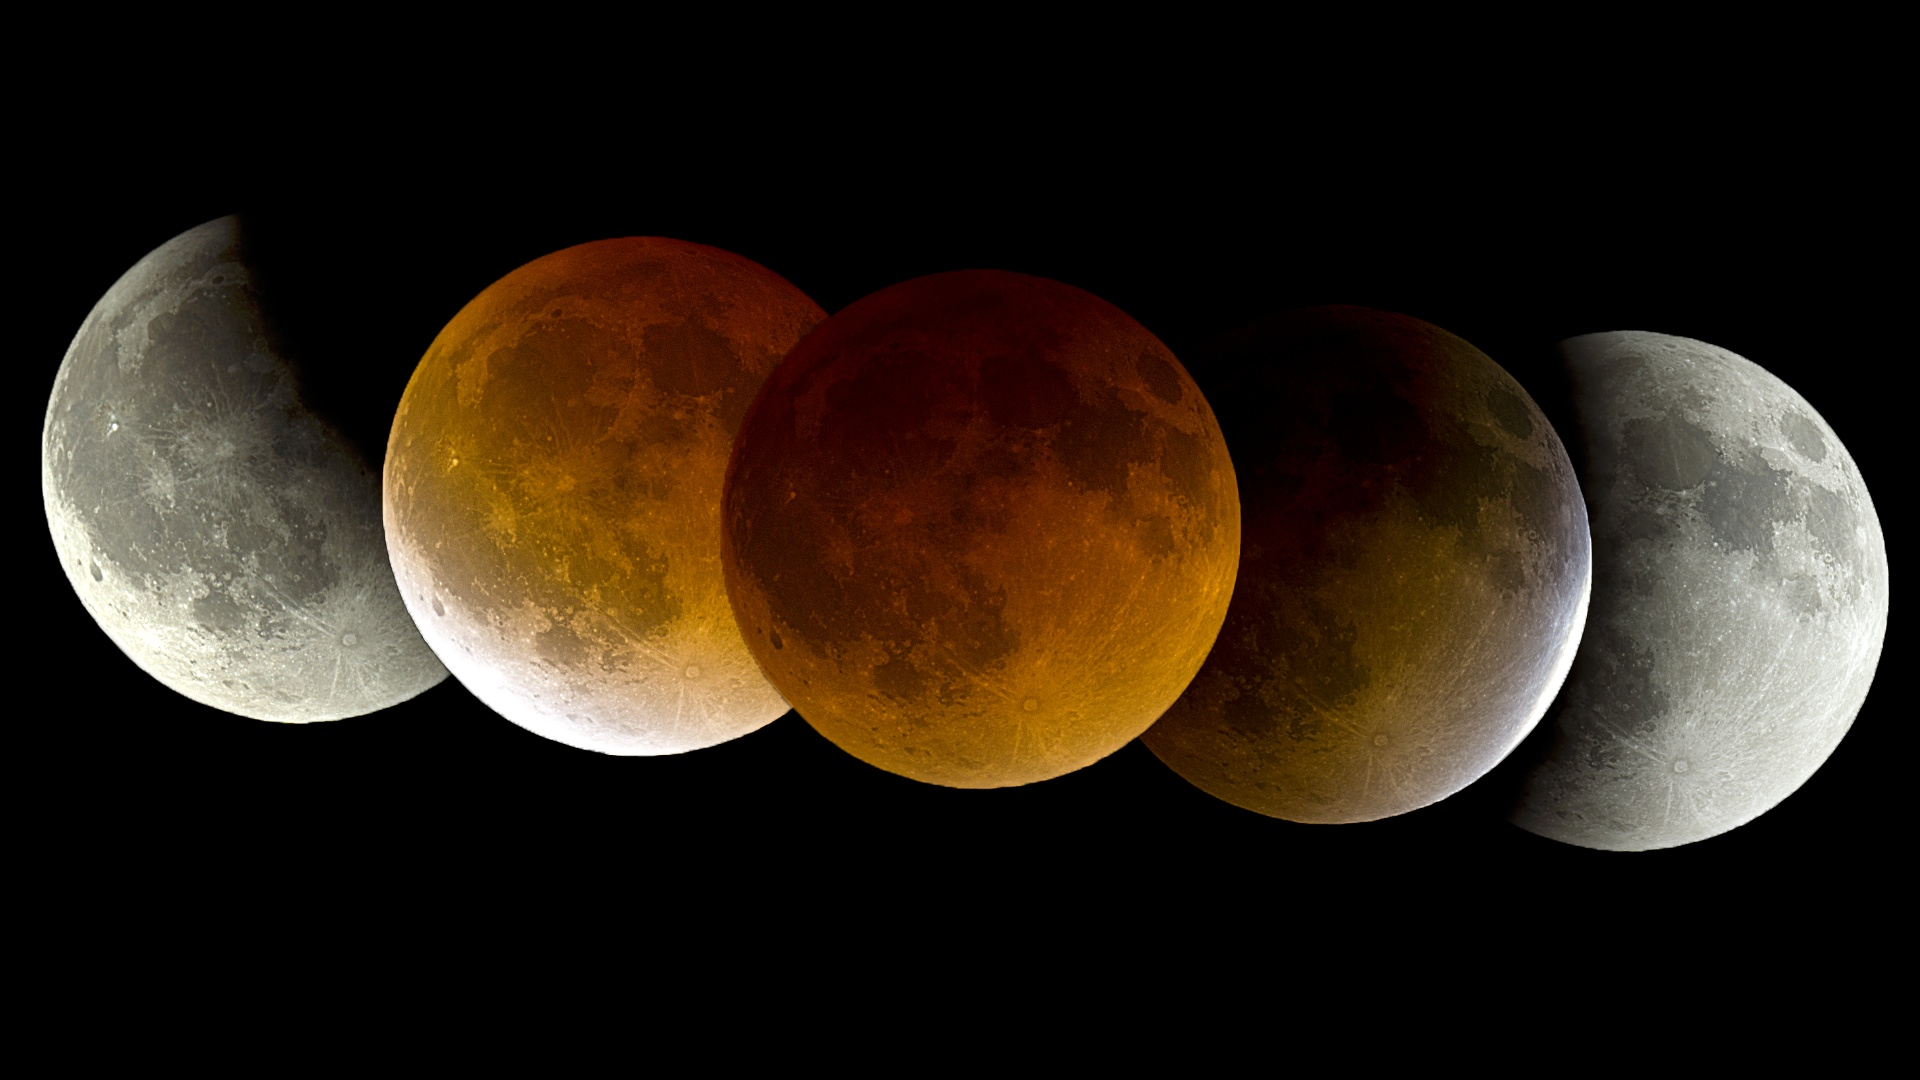 The Next Lunar Eclipse Will Be Visible From Louisiana